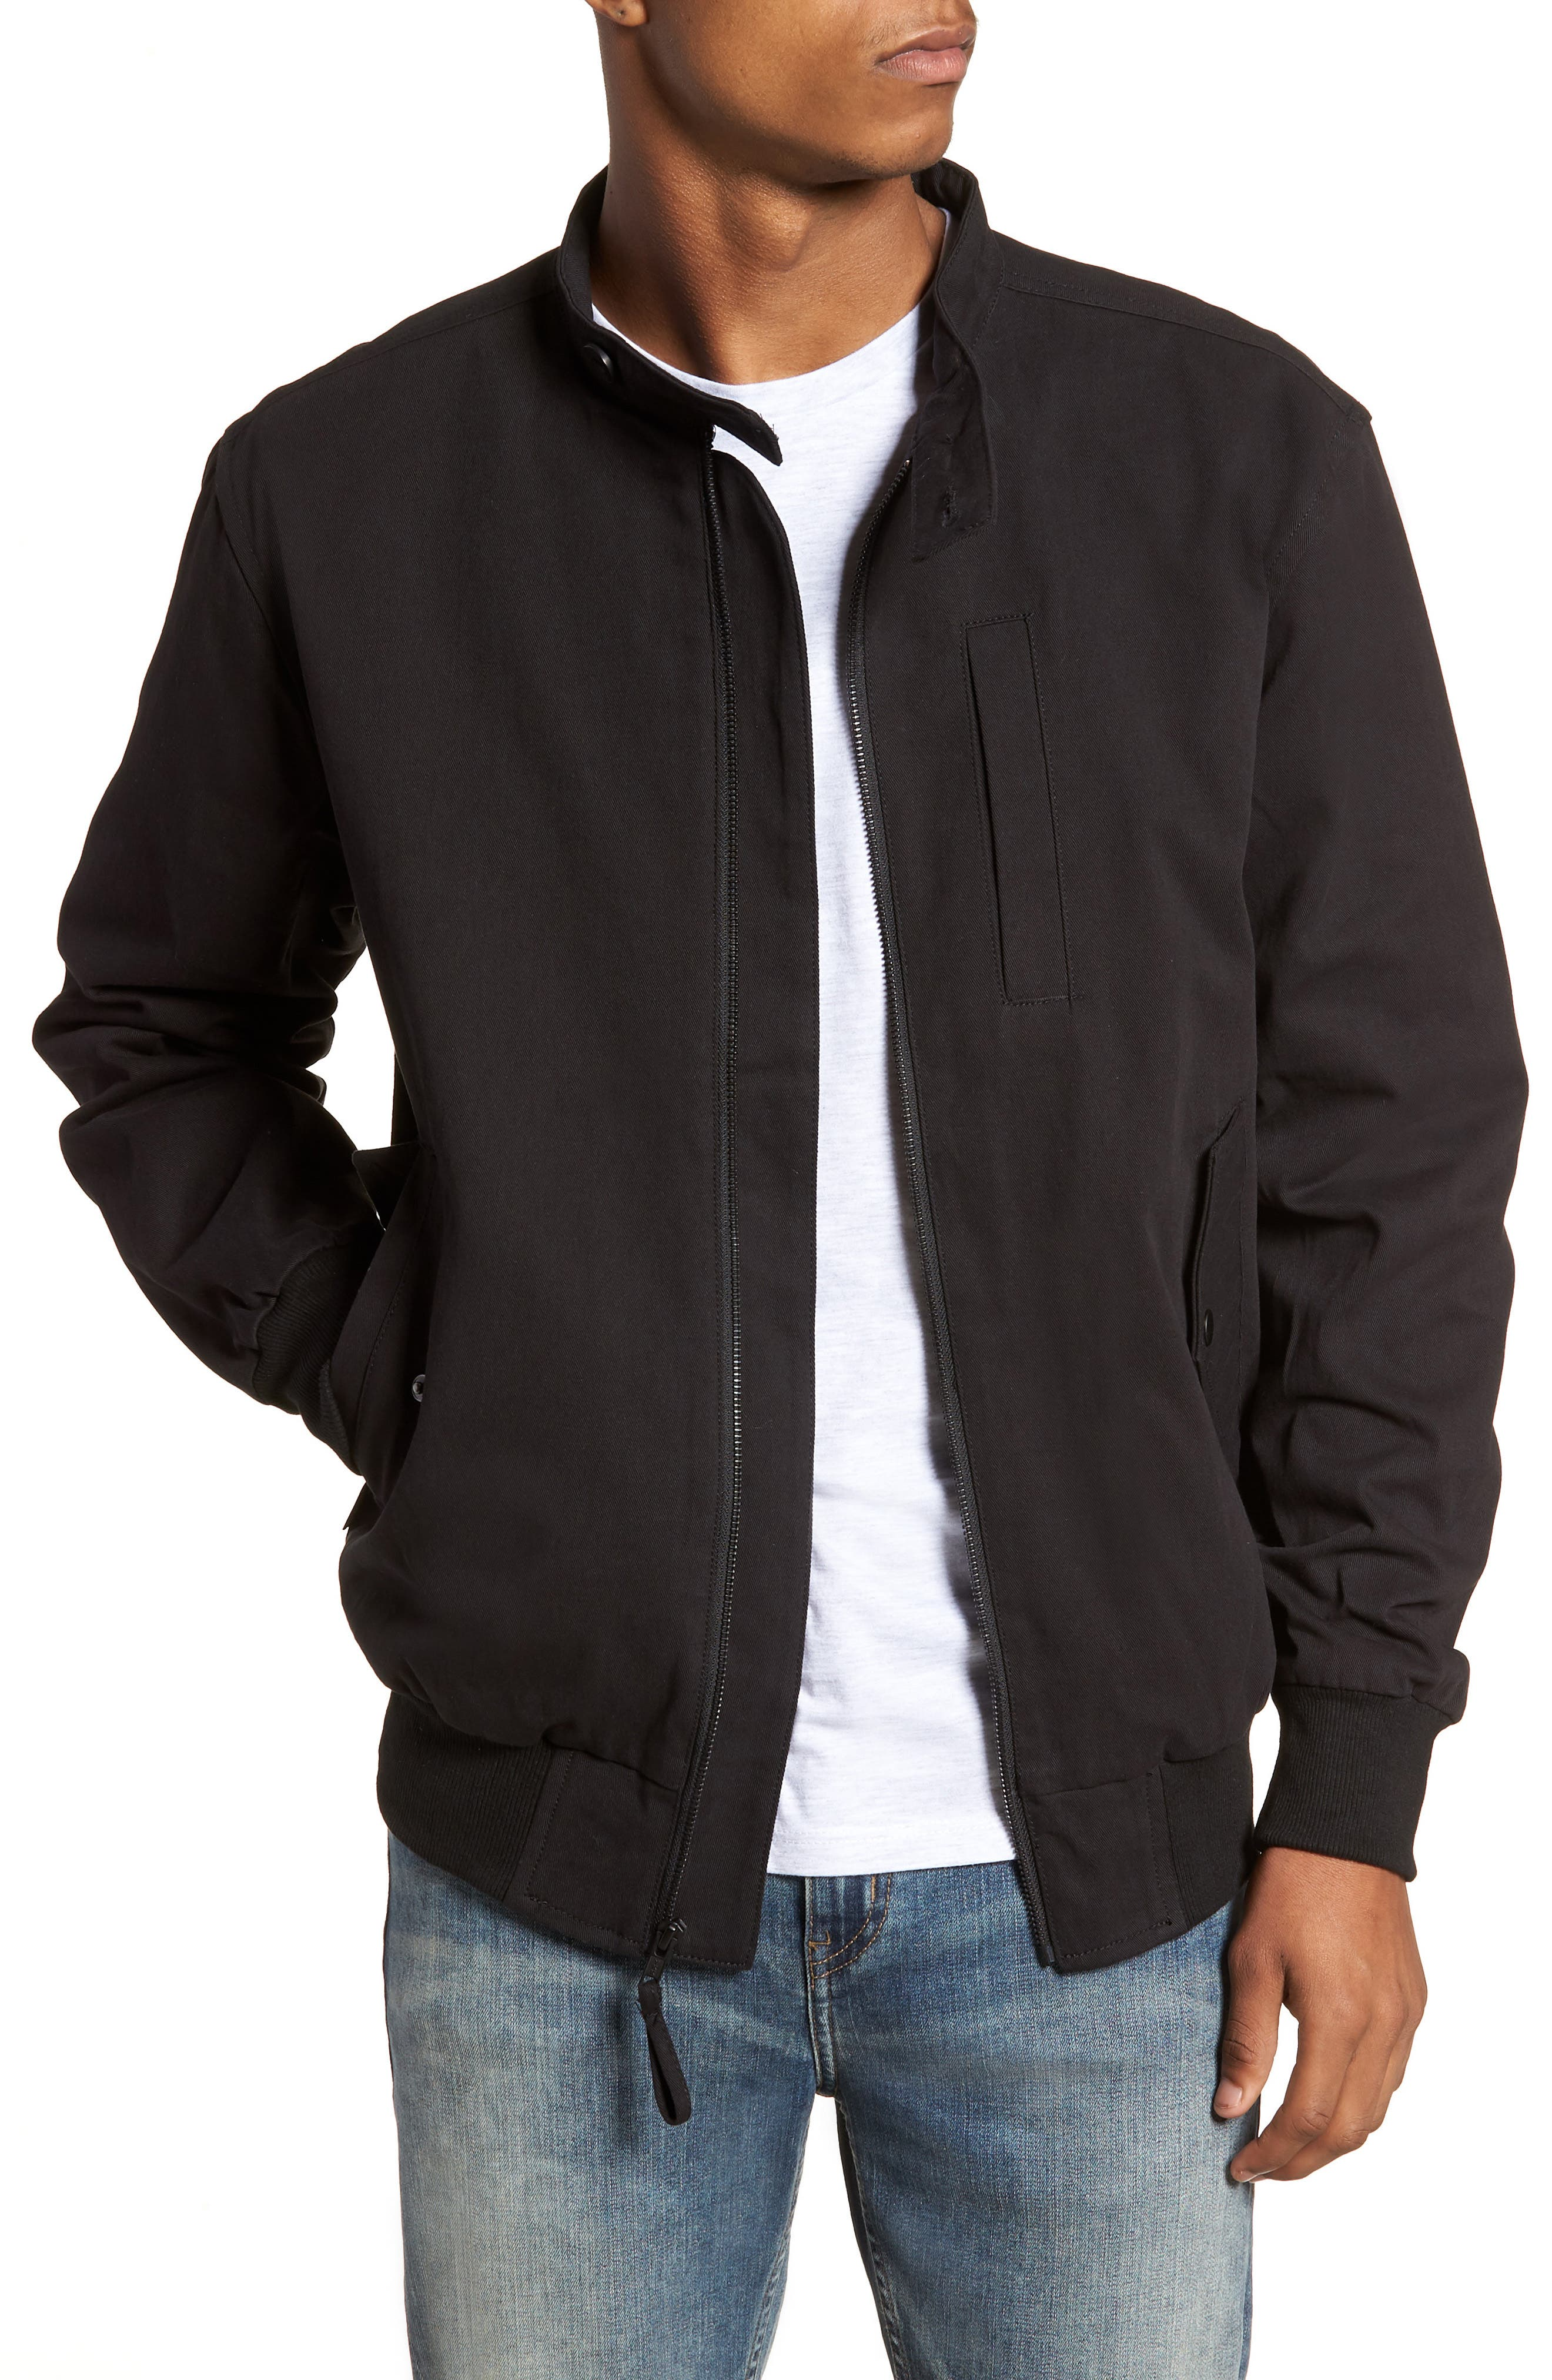 Dotson Twill Bomber Jacket,                         Main,                         color, 001